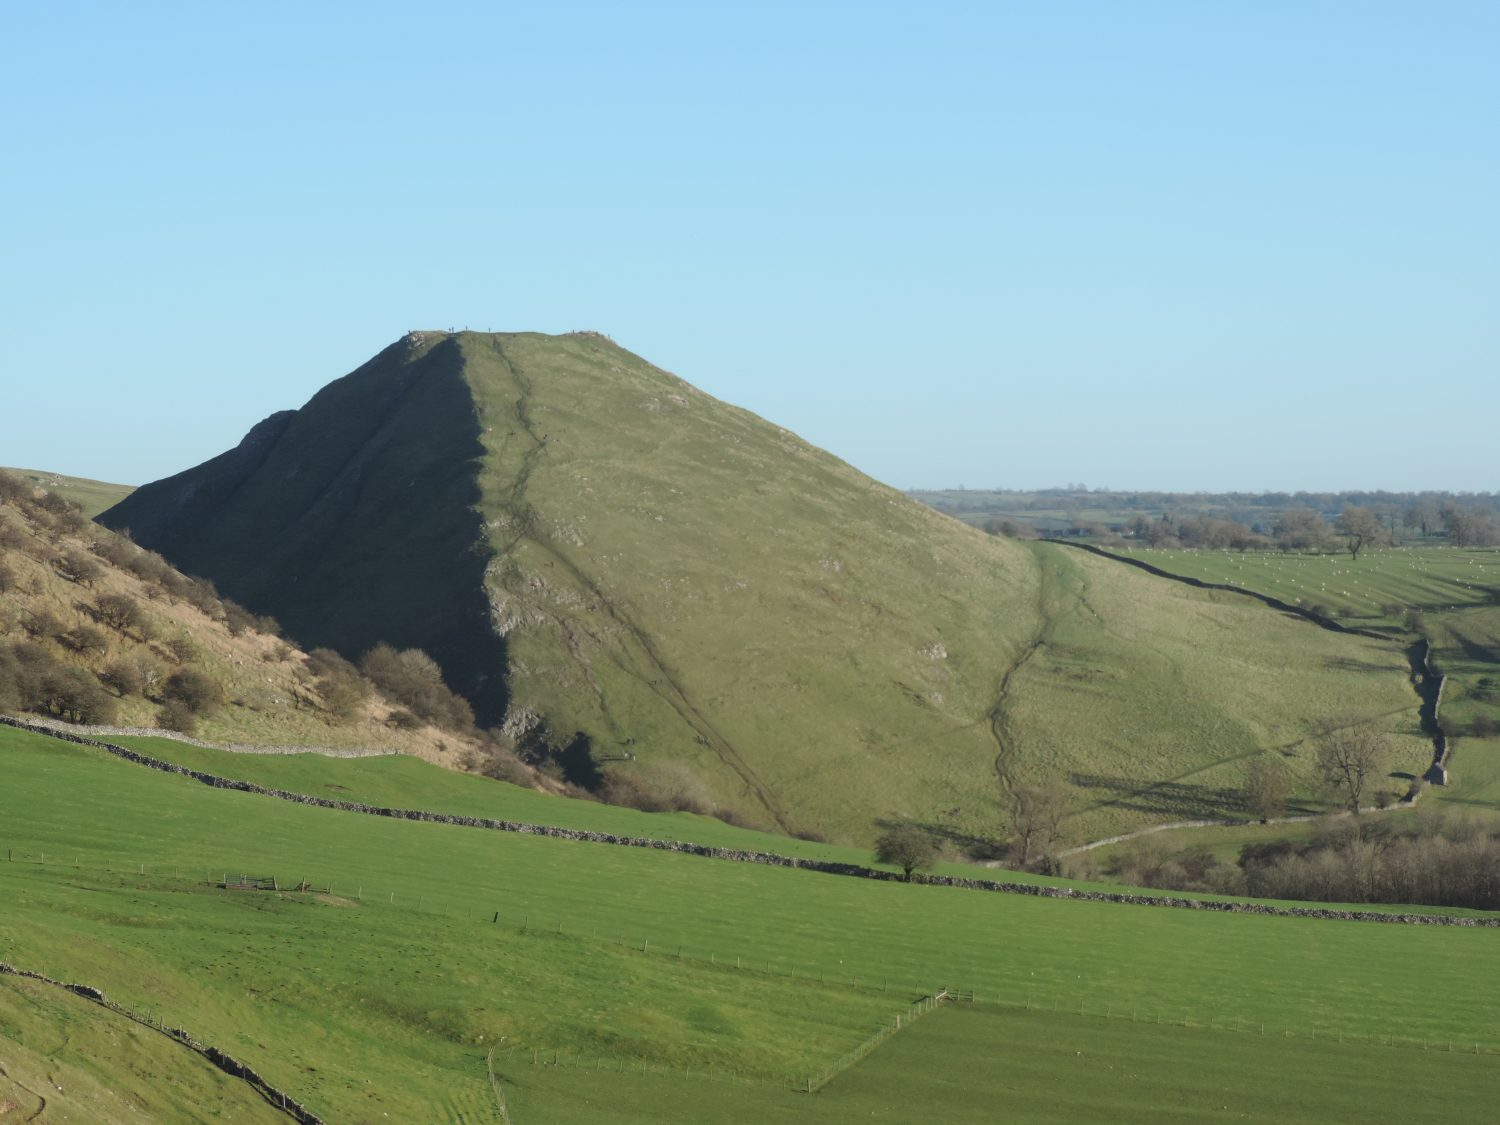 image: Thorpe Cloud seen from Bunster Hill